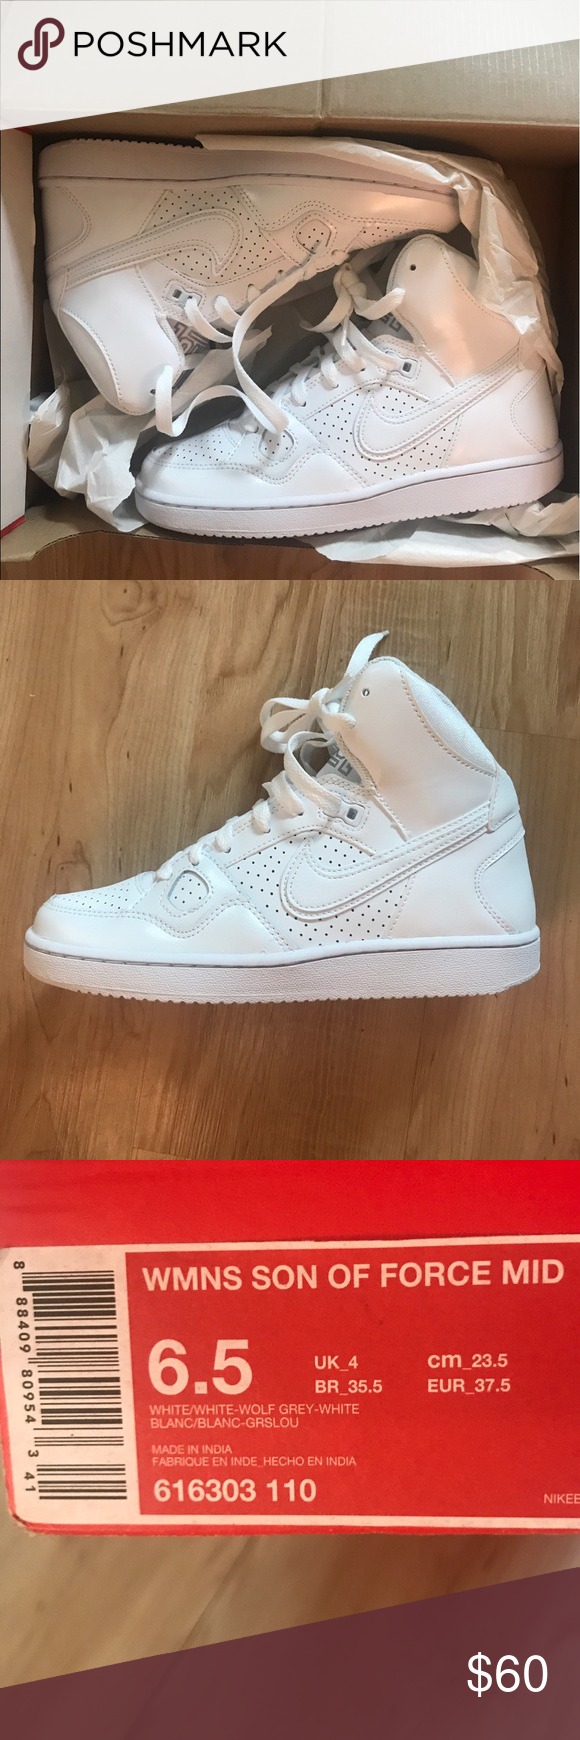 NEW Nike Women's Son of Air Force One Mid Sz Brand new, still in